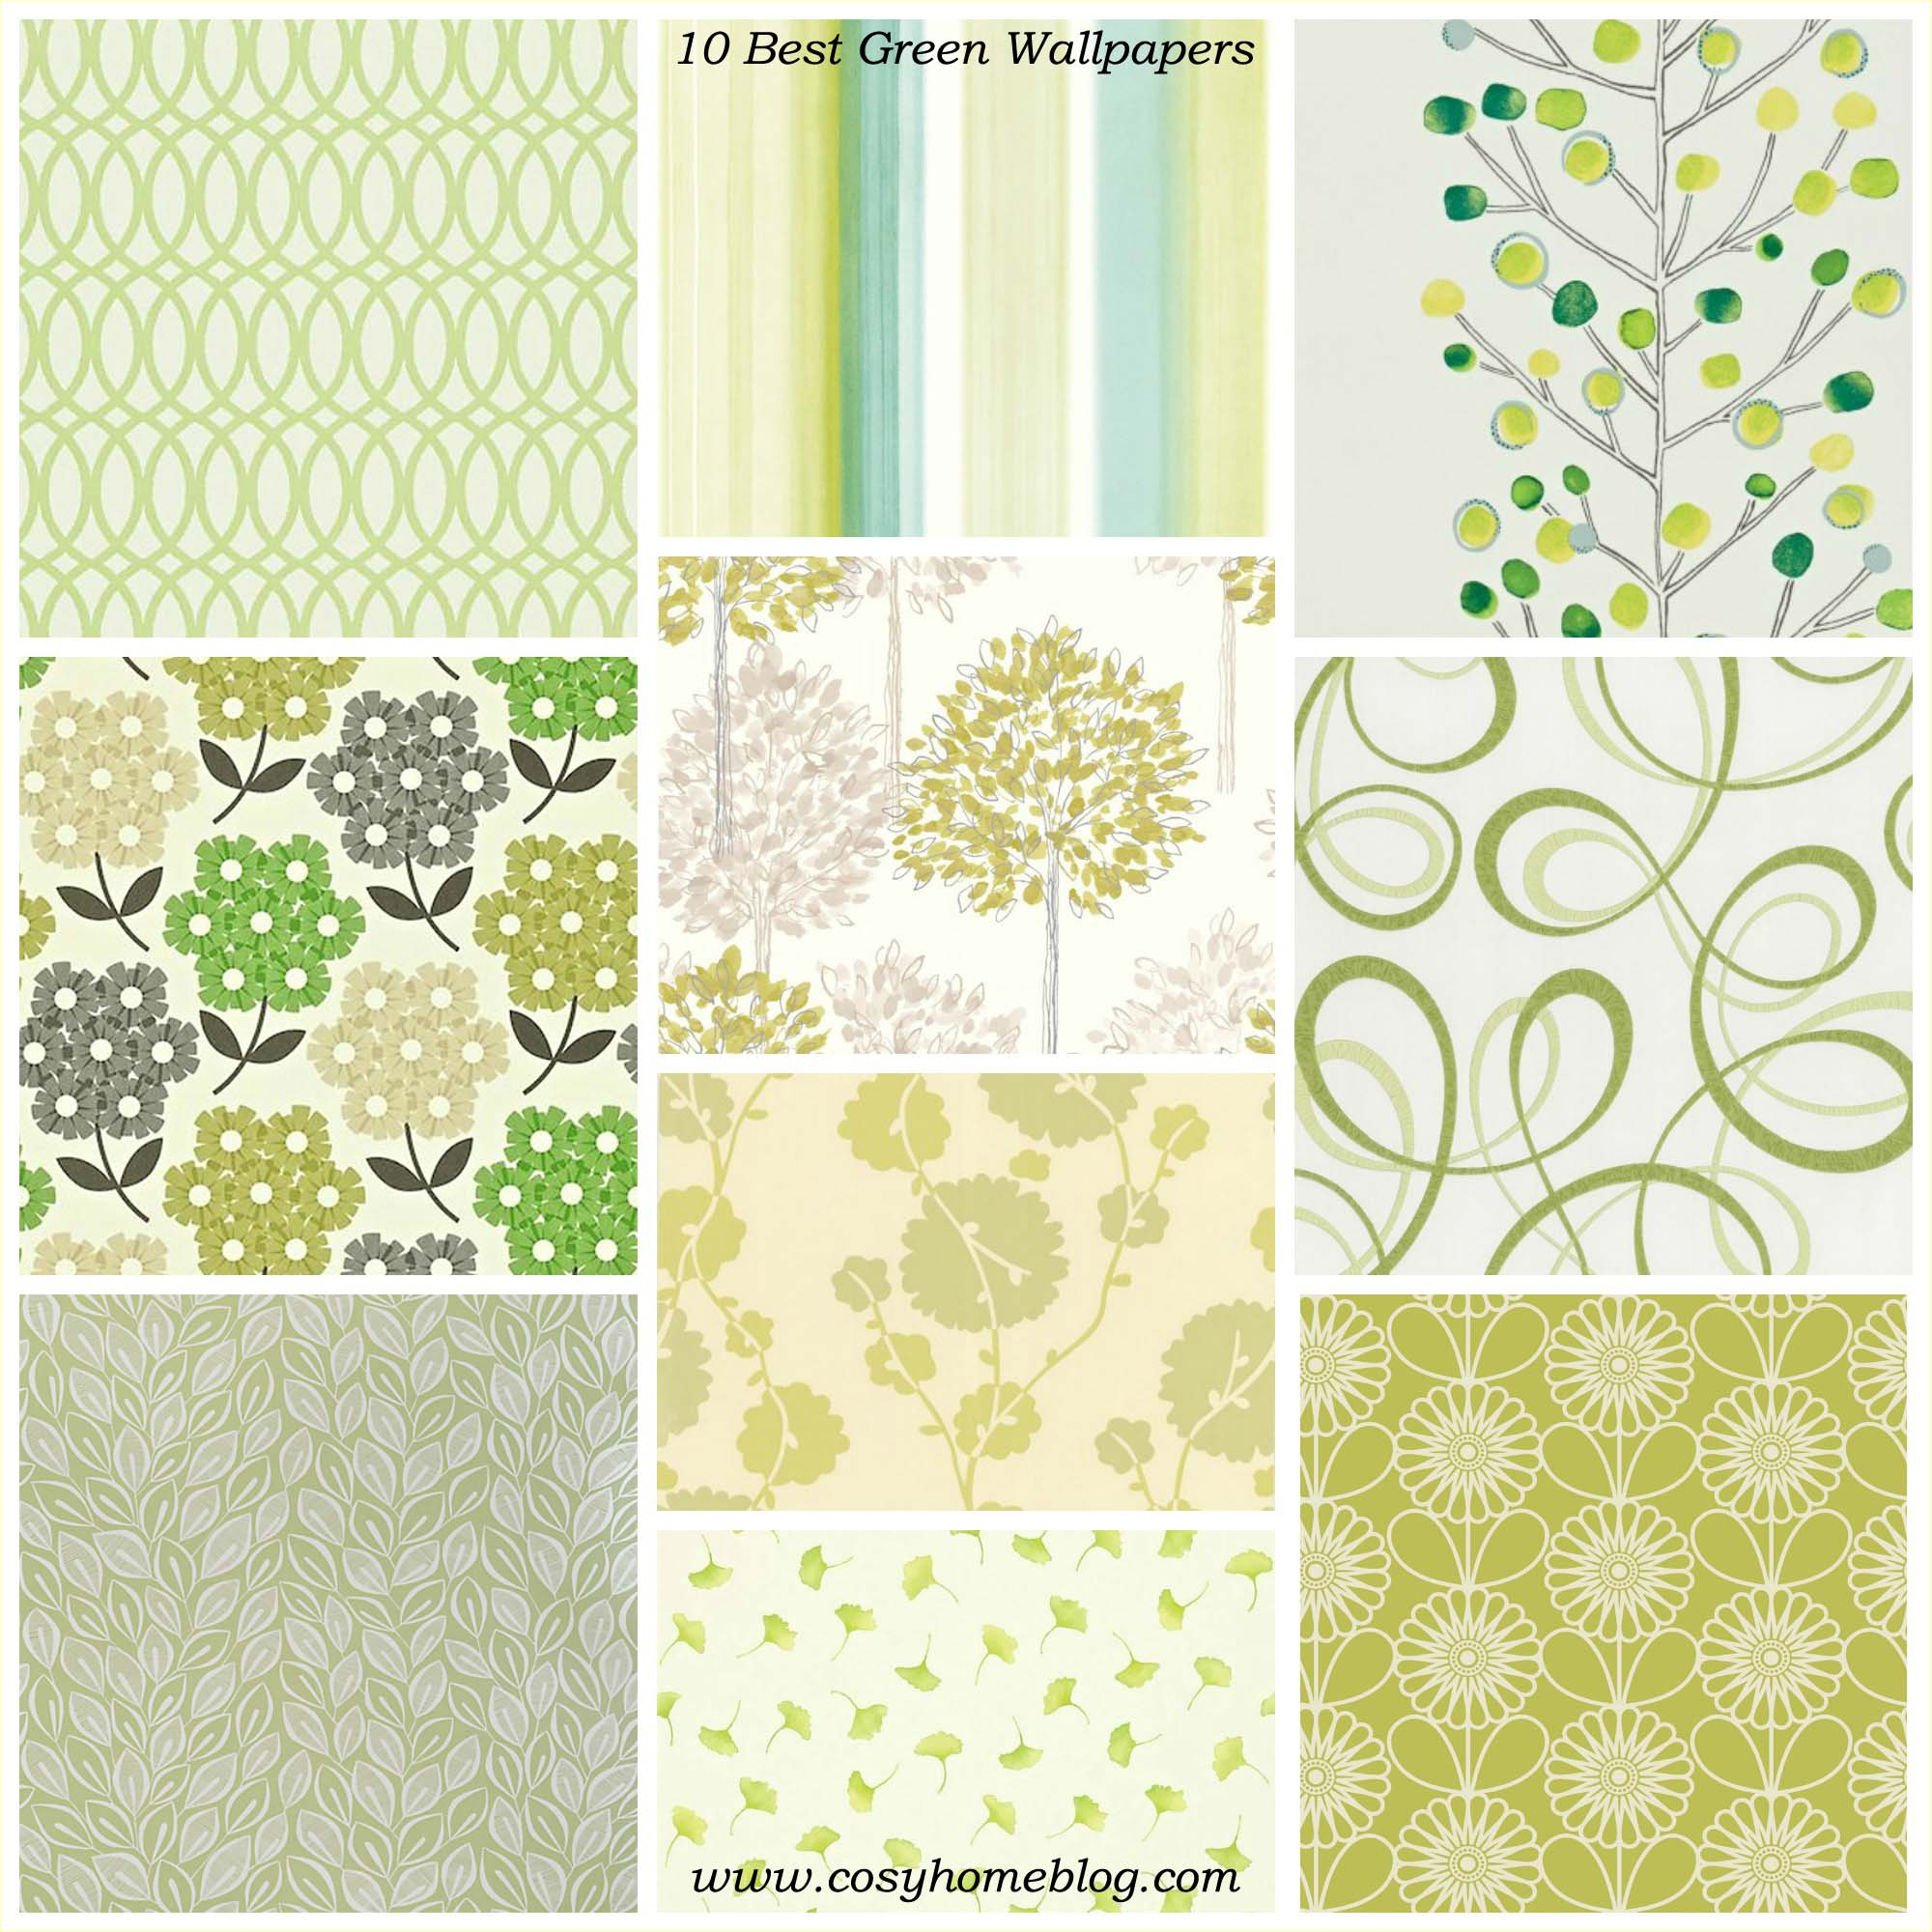 Spring greens 10 green wallpaper decorating ideas for Wallpaper design ideas